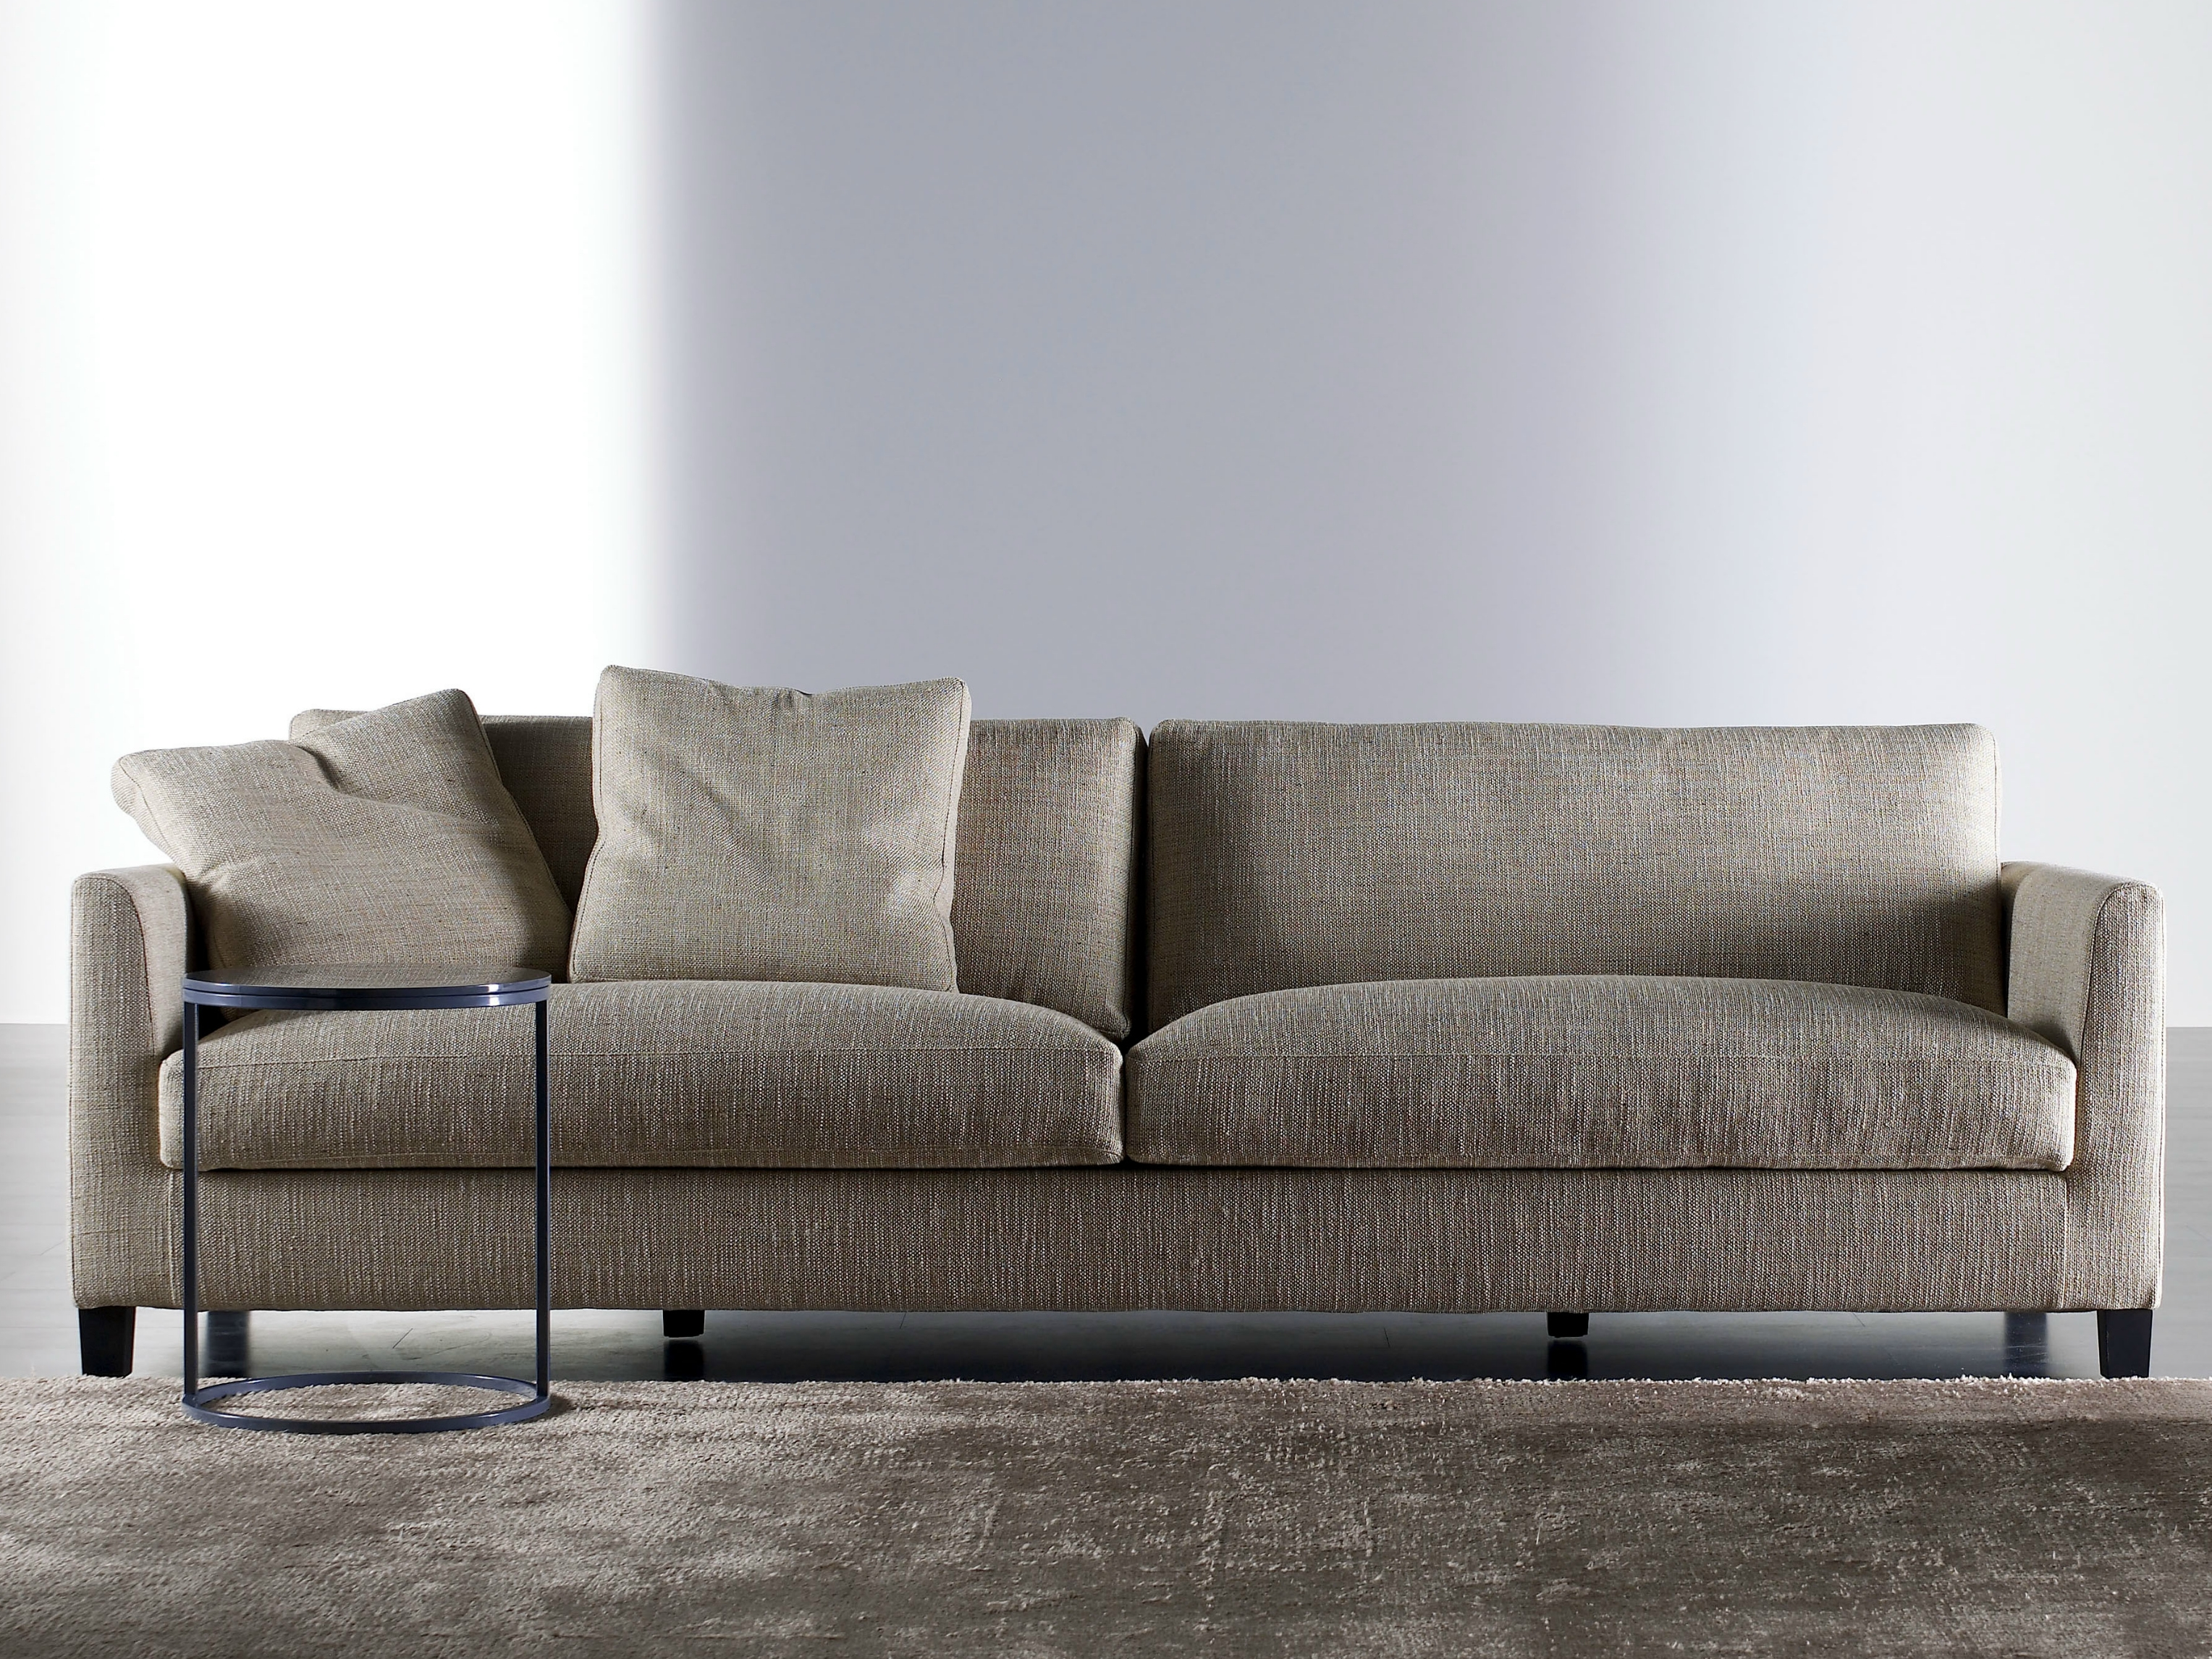 Biss Sofa Meridiani In Sofa With Removable Cover (Image 2 of 15)